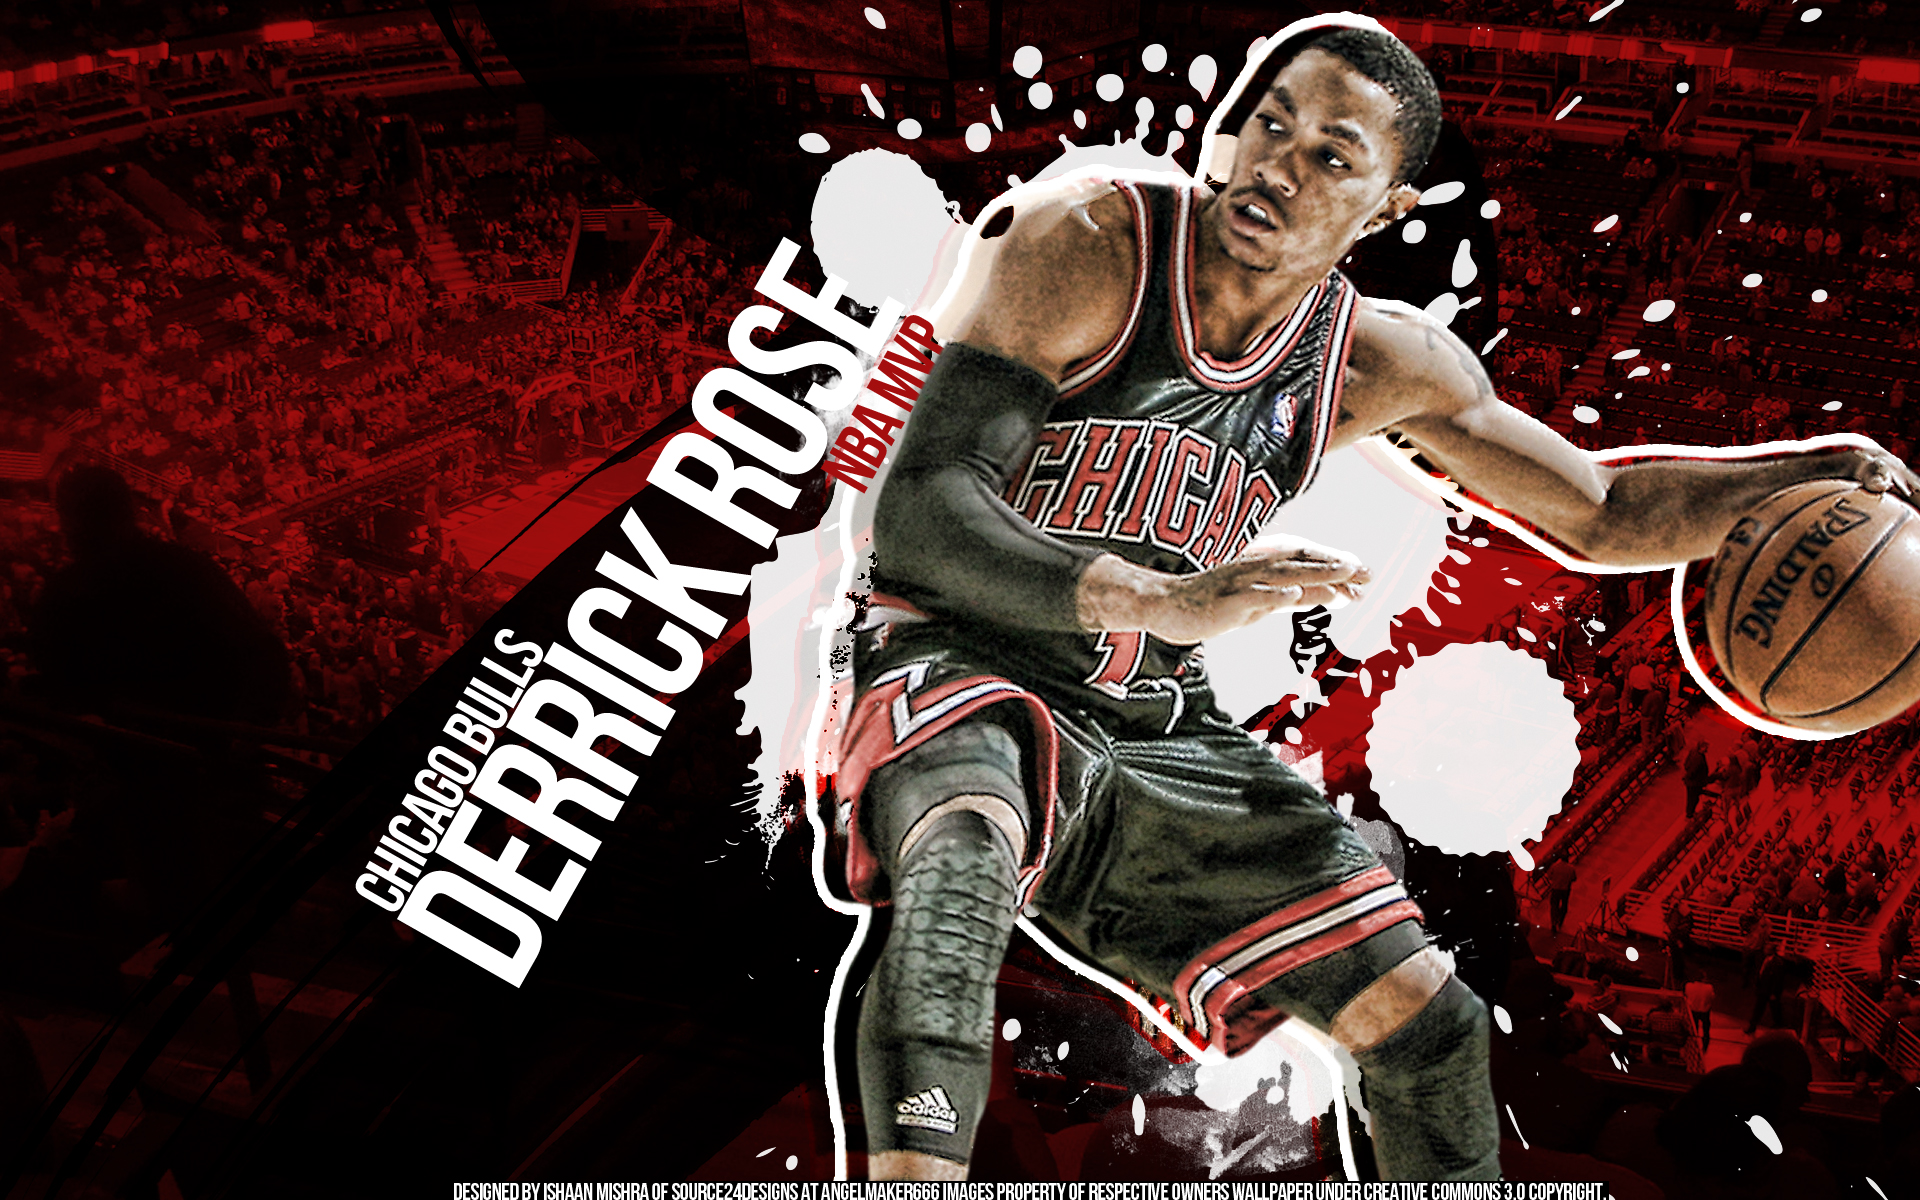 Derrick Rose MVP by Angelmaker666 on deviantART 1920x1200